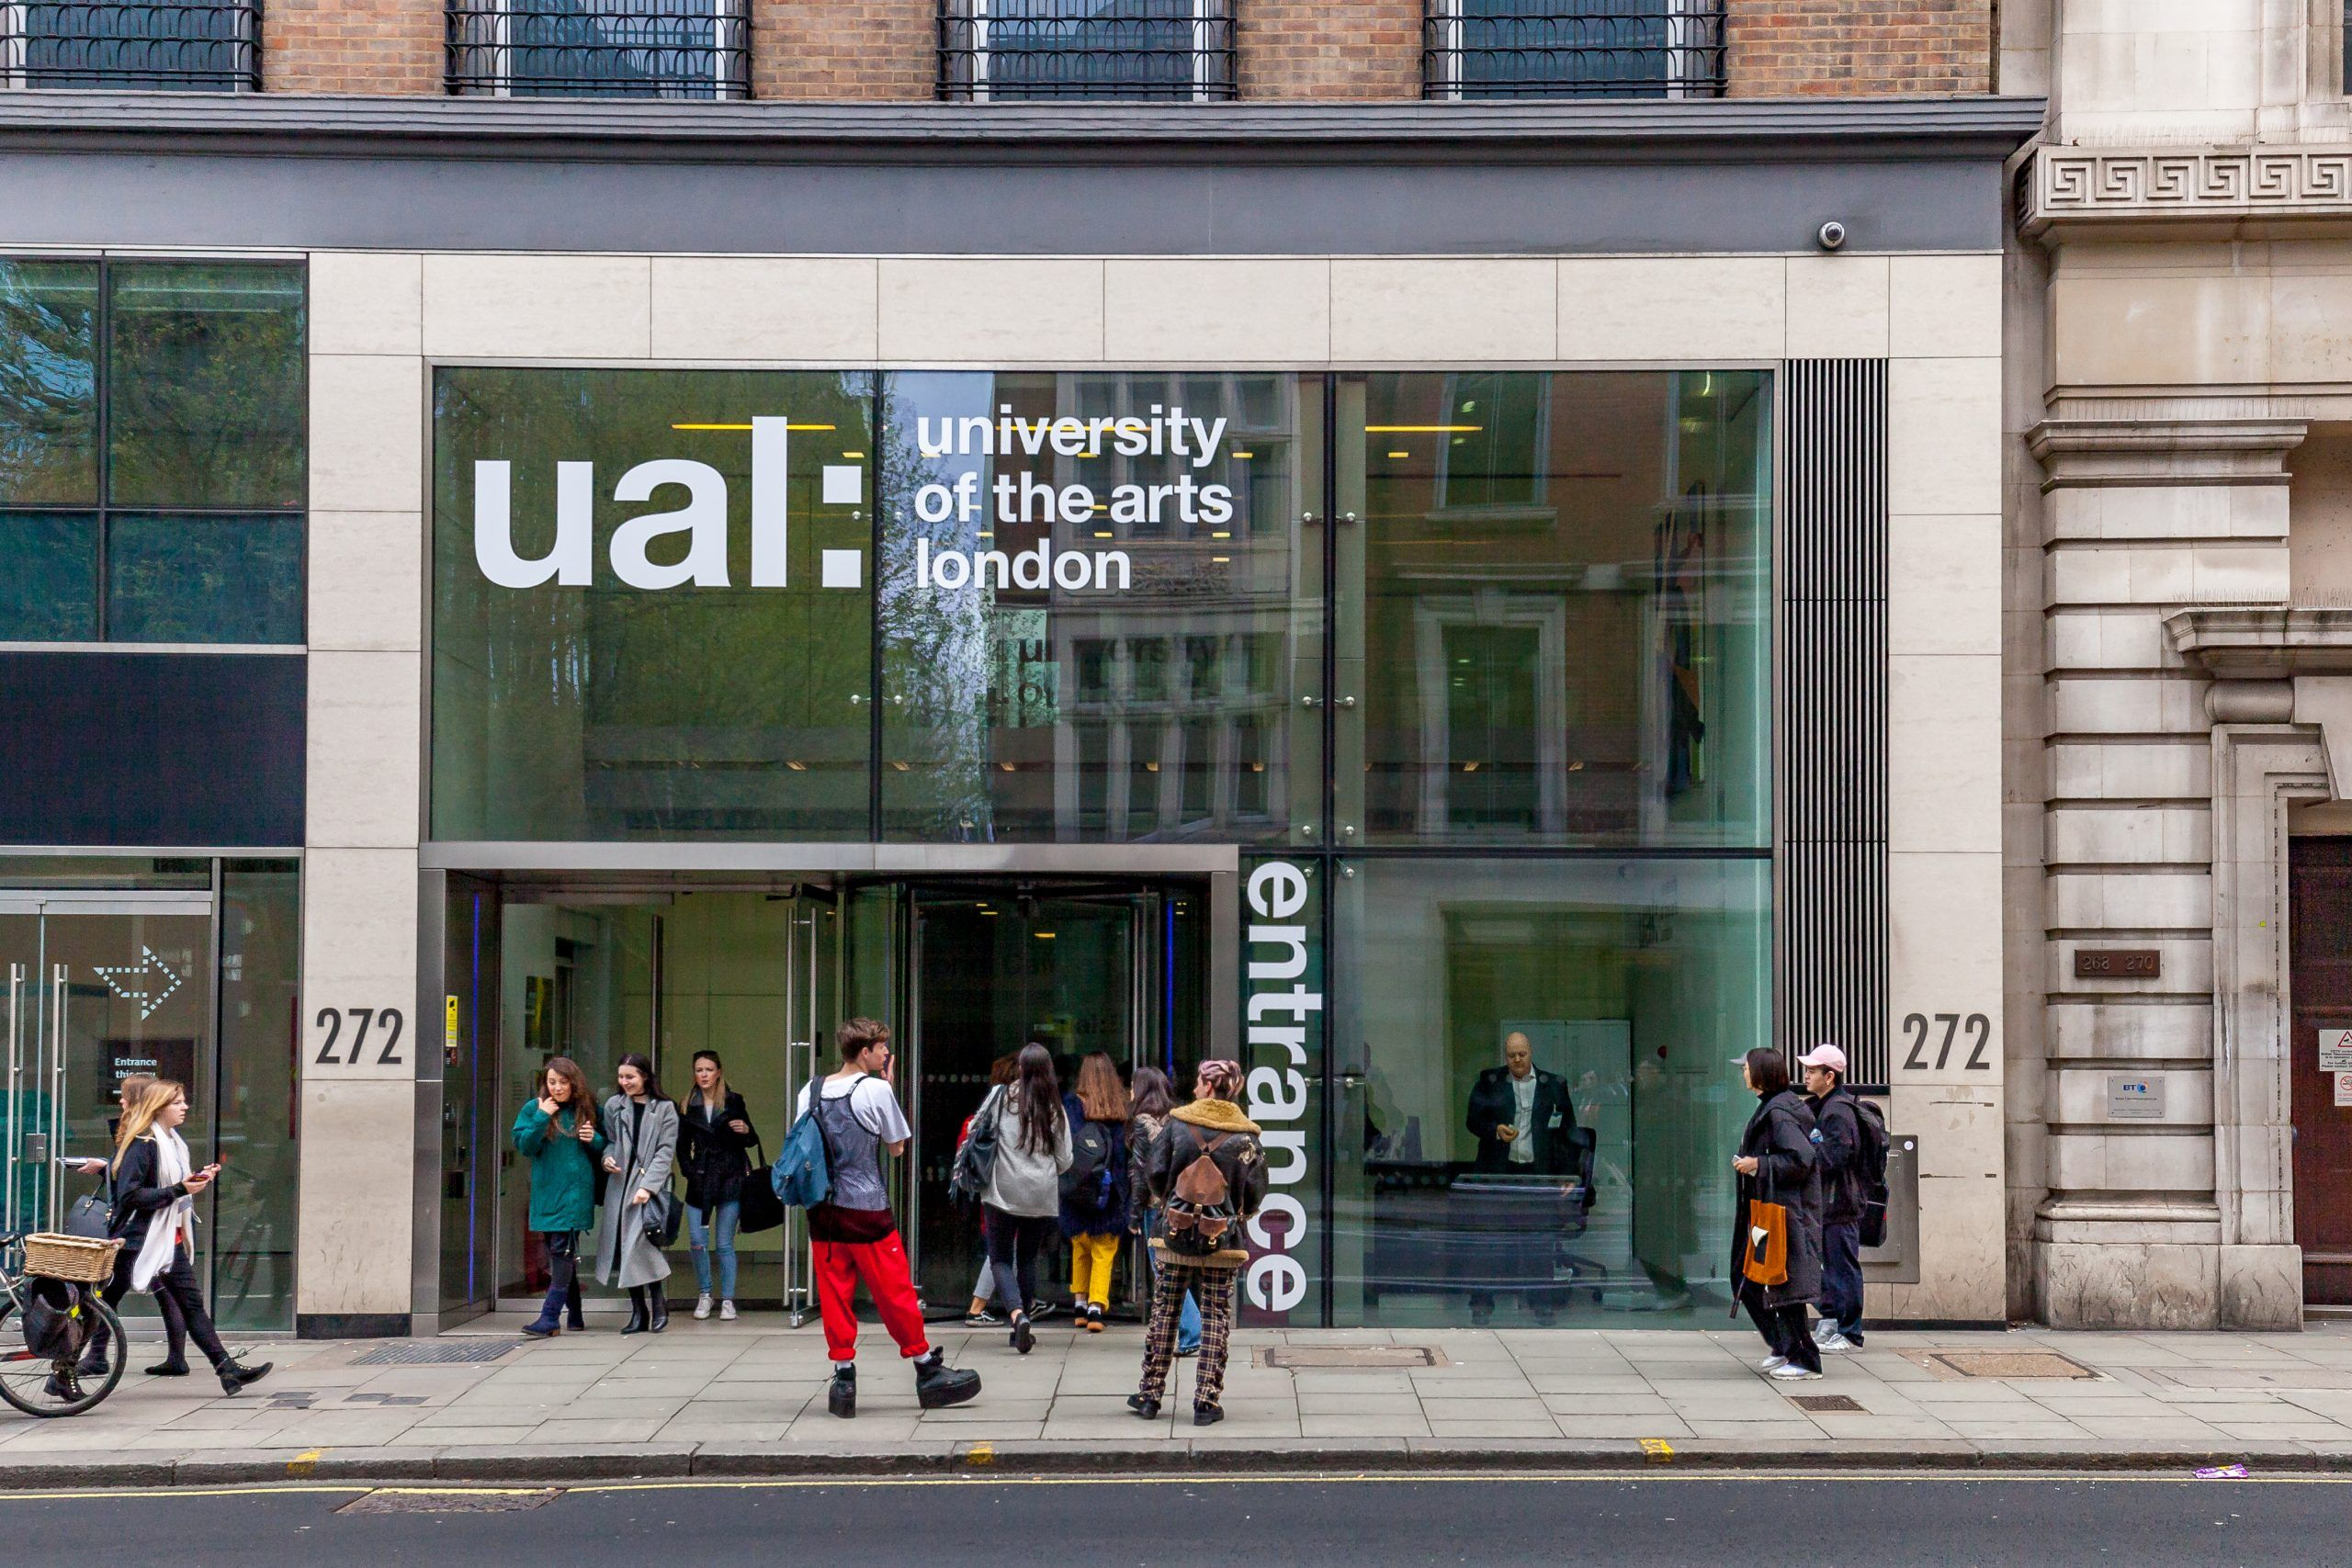 University of the Arts London Central Services Entrance. Photo Ualwebsupport CC BY SA 4.0 https creativecommons.org licenses by sa 4.0 via Wikimedia Commons